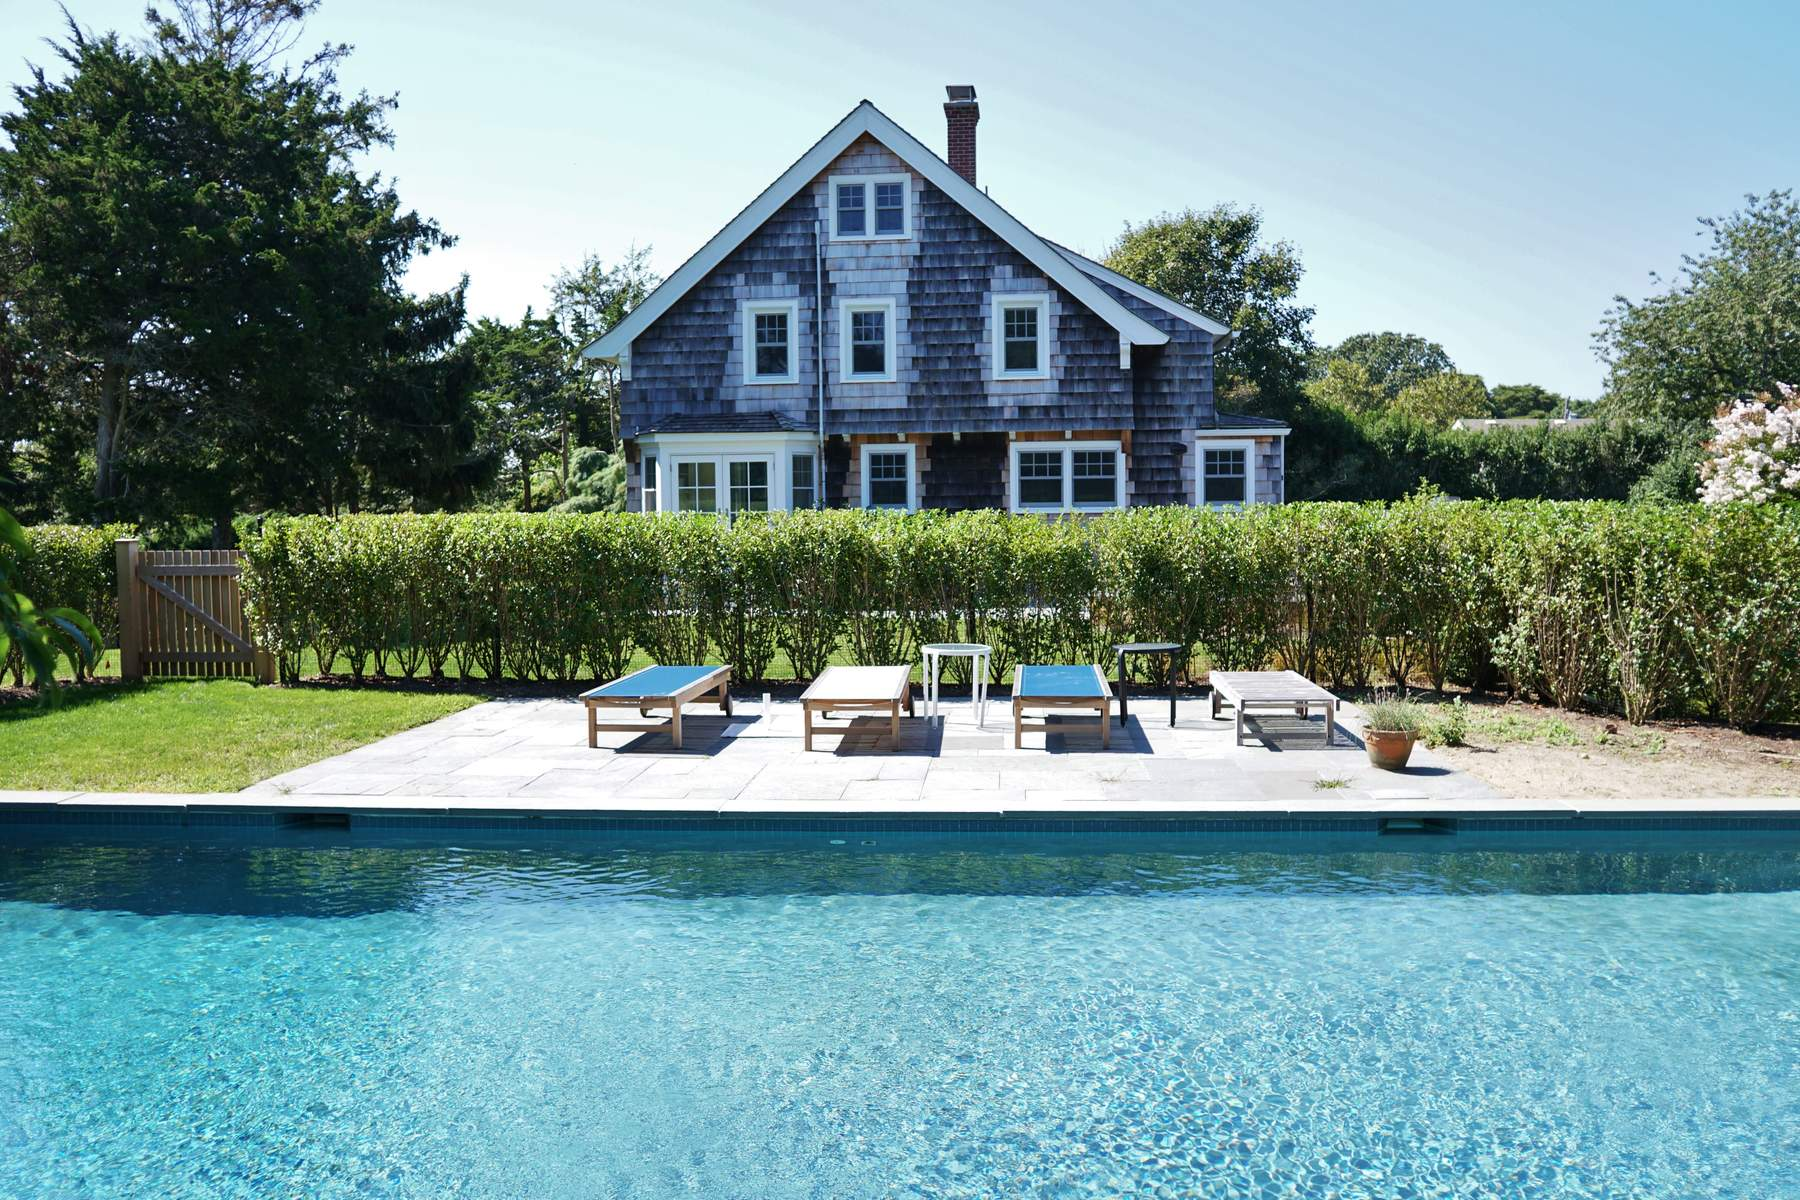 Single Family Home for Rent at Charming Traditional Minutes To Beach 368 Bluff Road Amagansett, New York 11930 United States